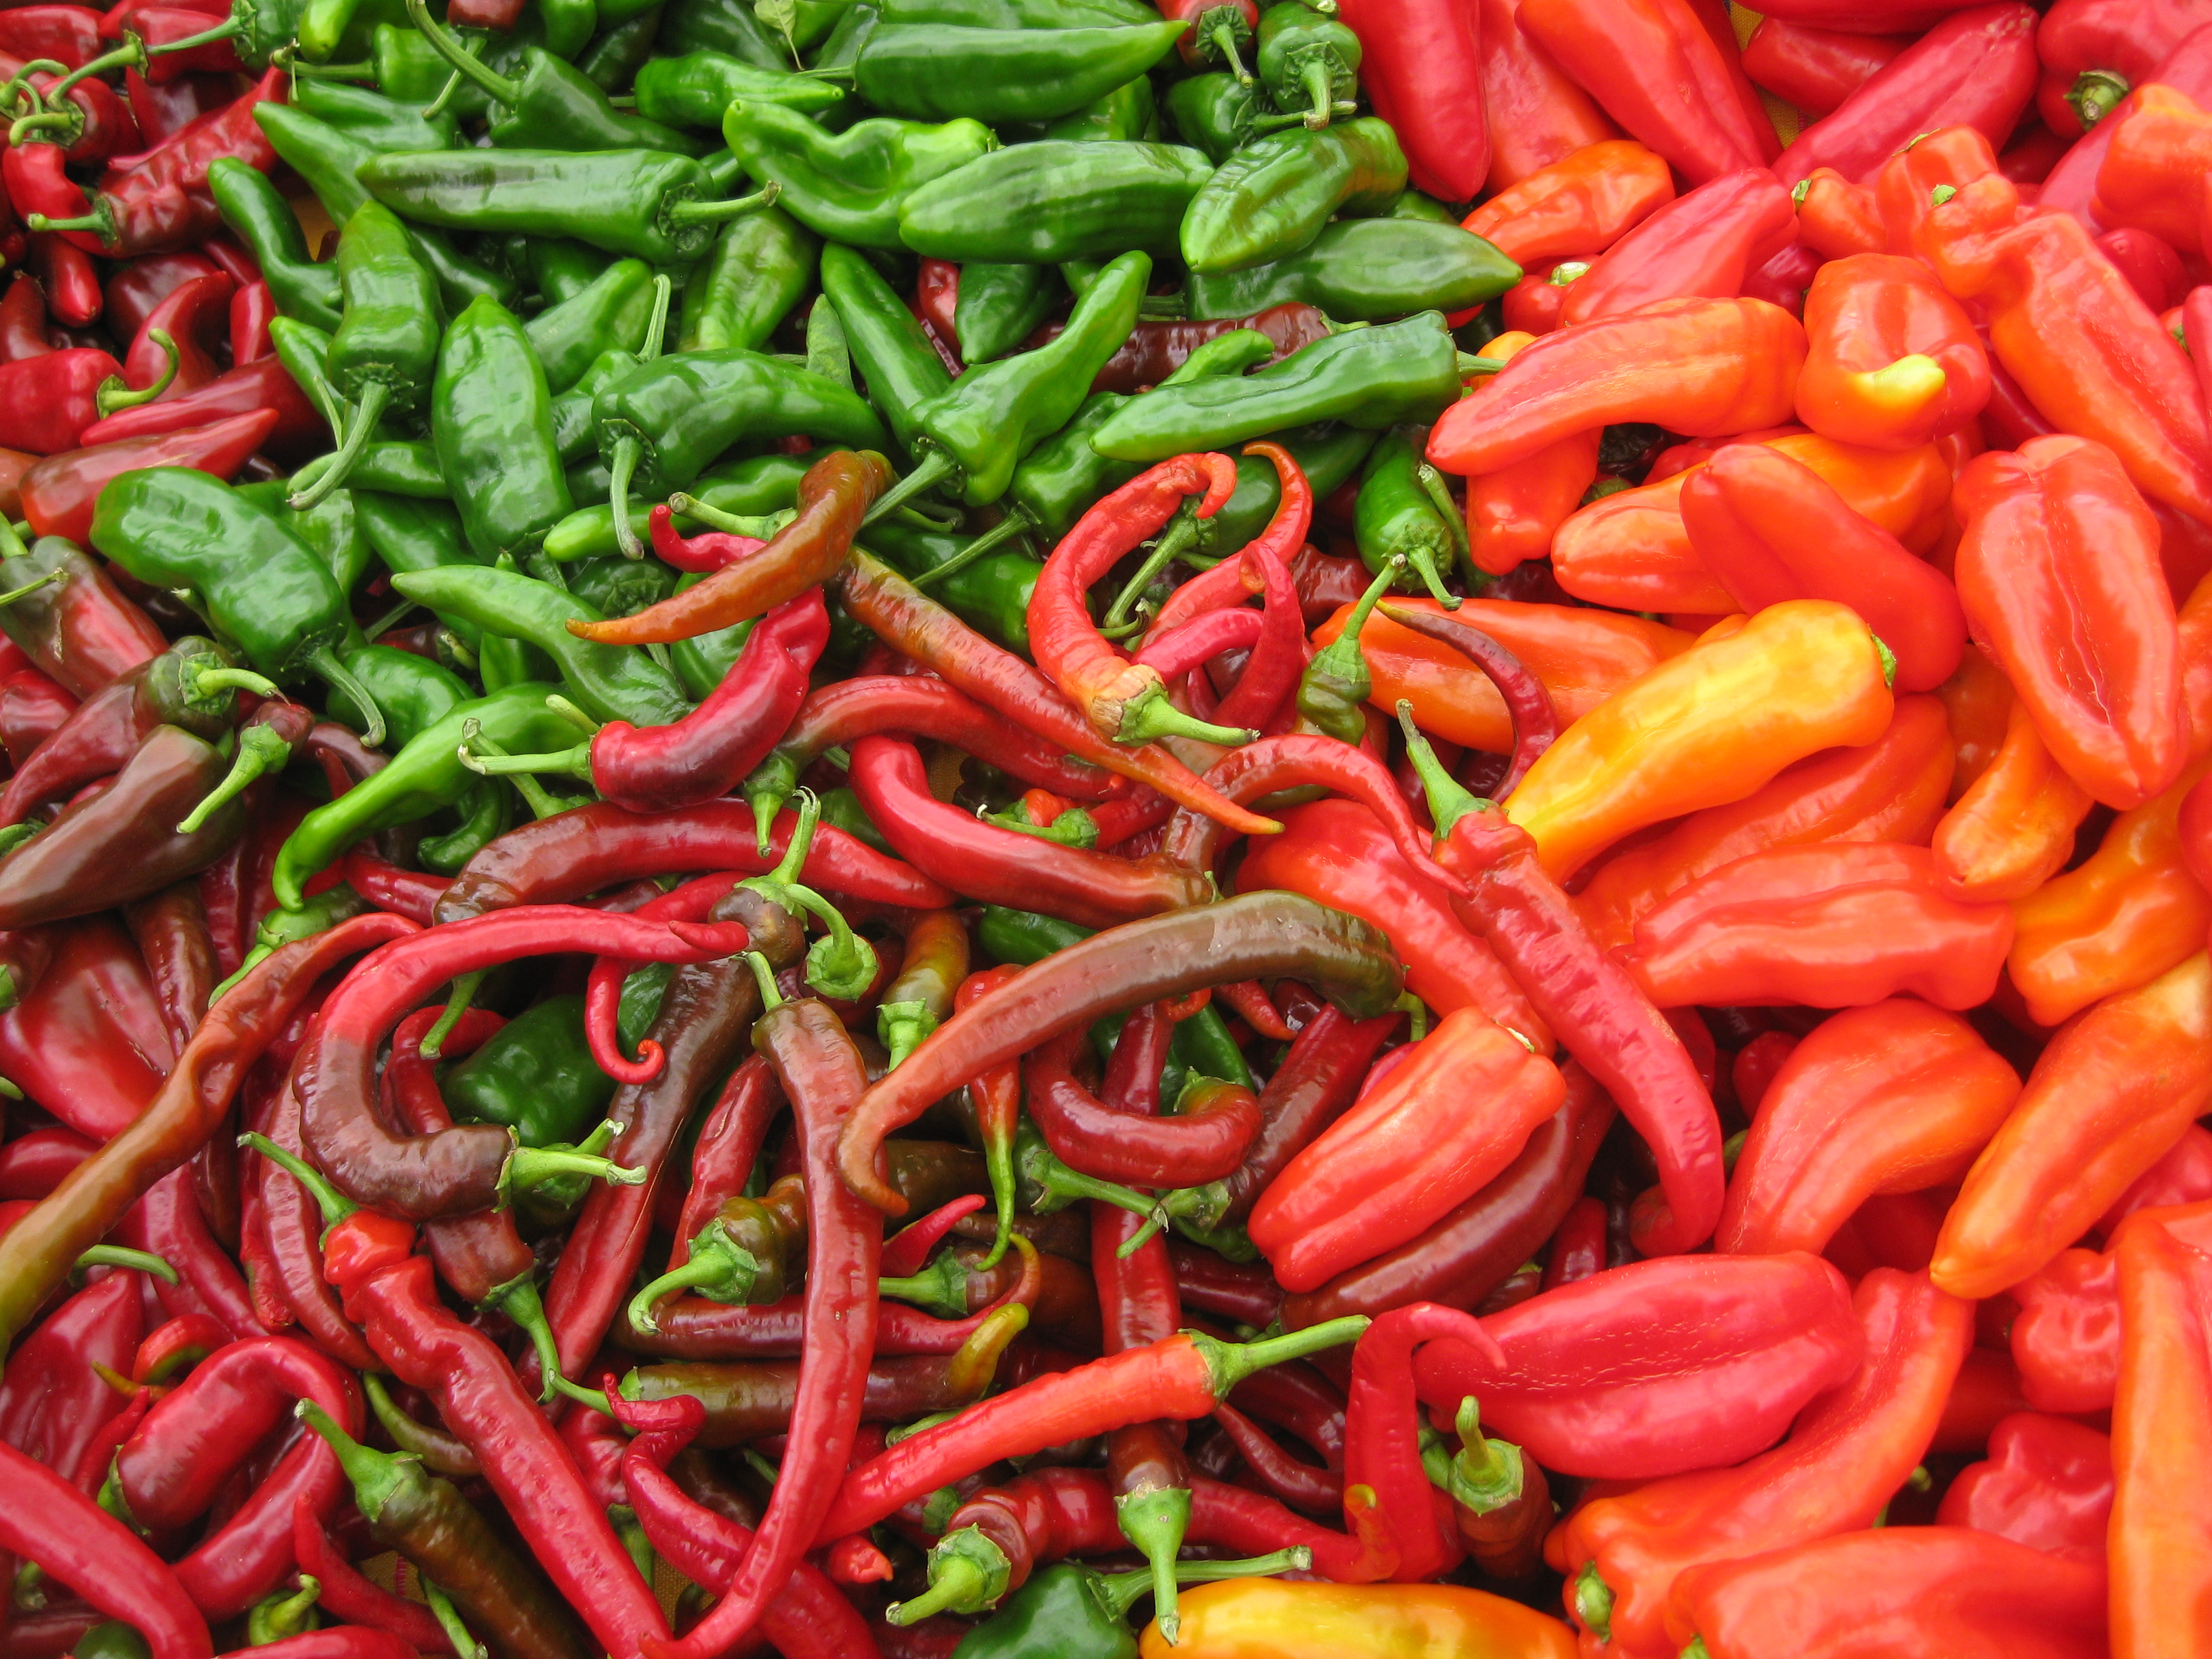 Hot pepper casino download parkinsons disease medication and gambling